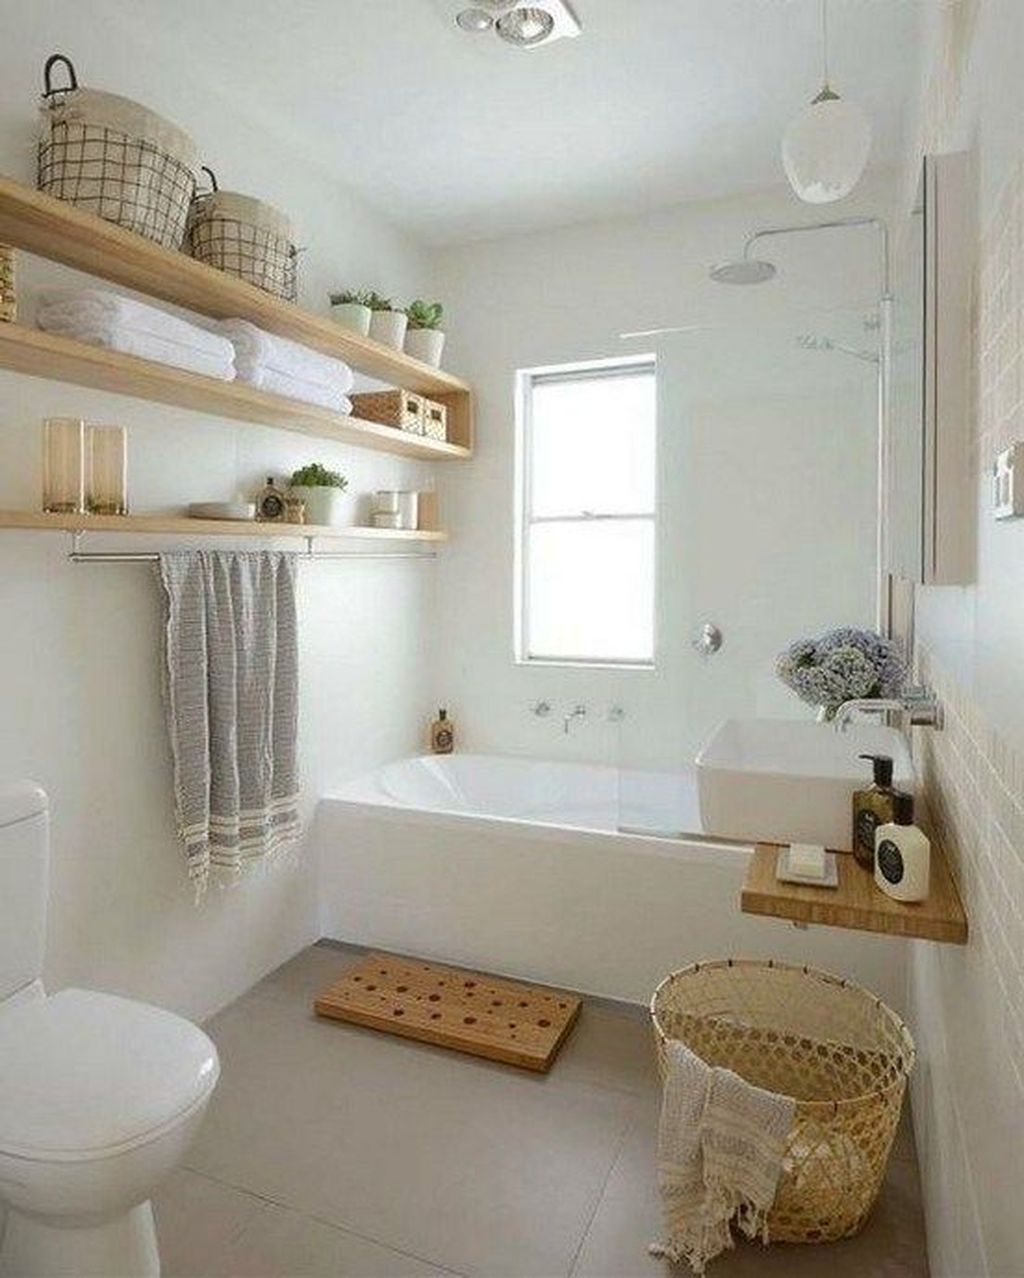 Amazing Bathroom Storage Design Ideas For Small Space 02